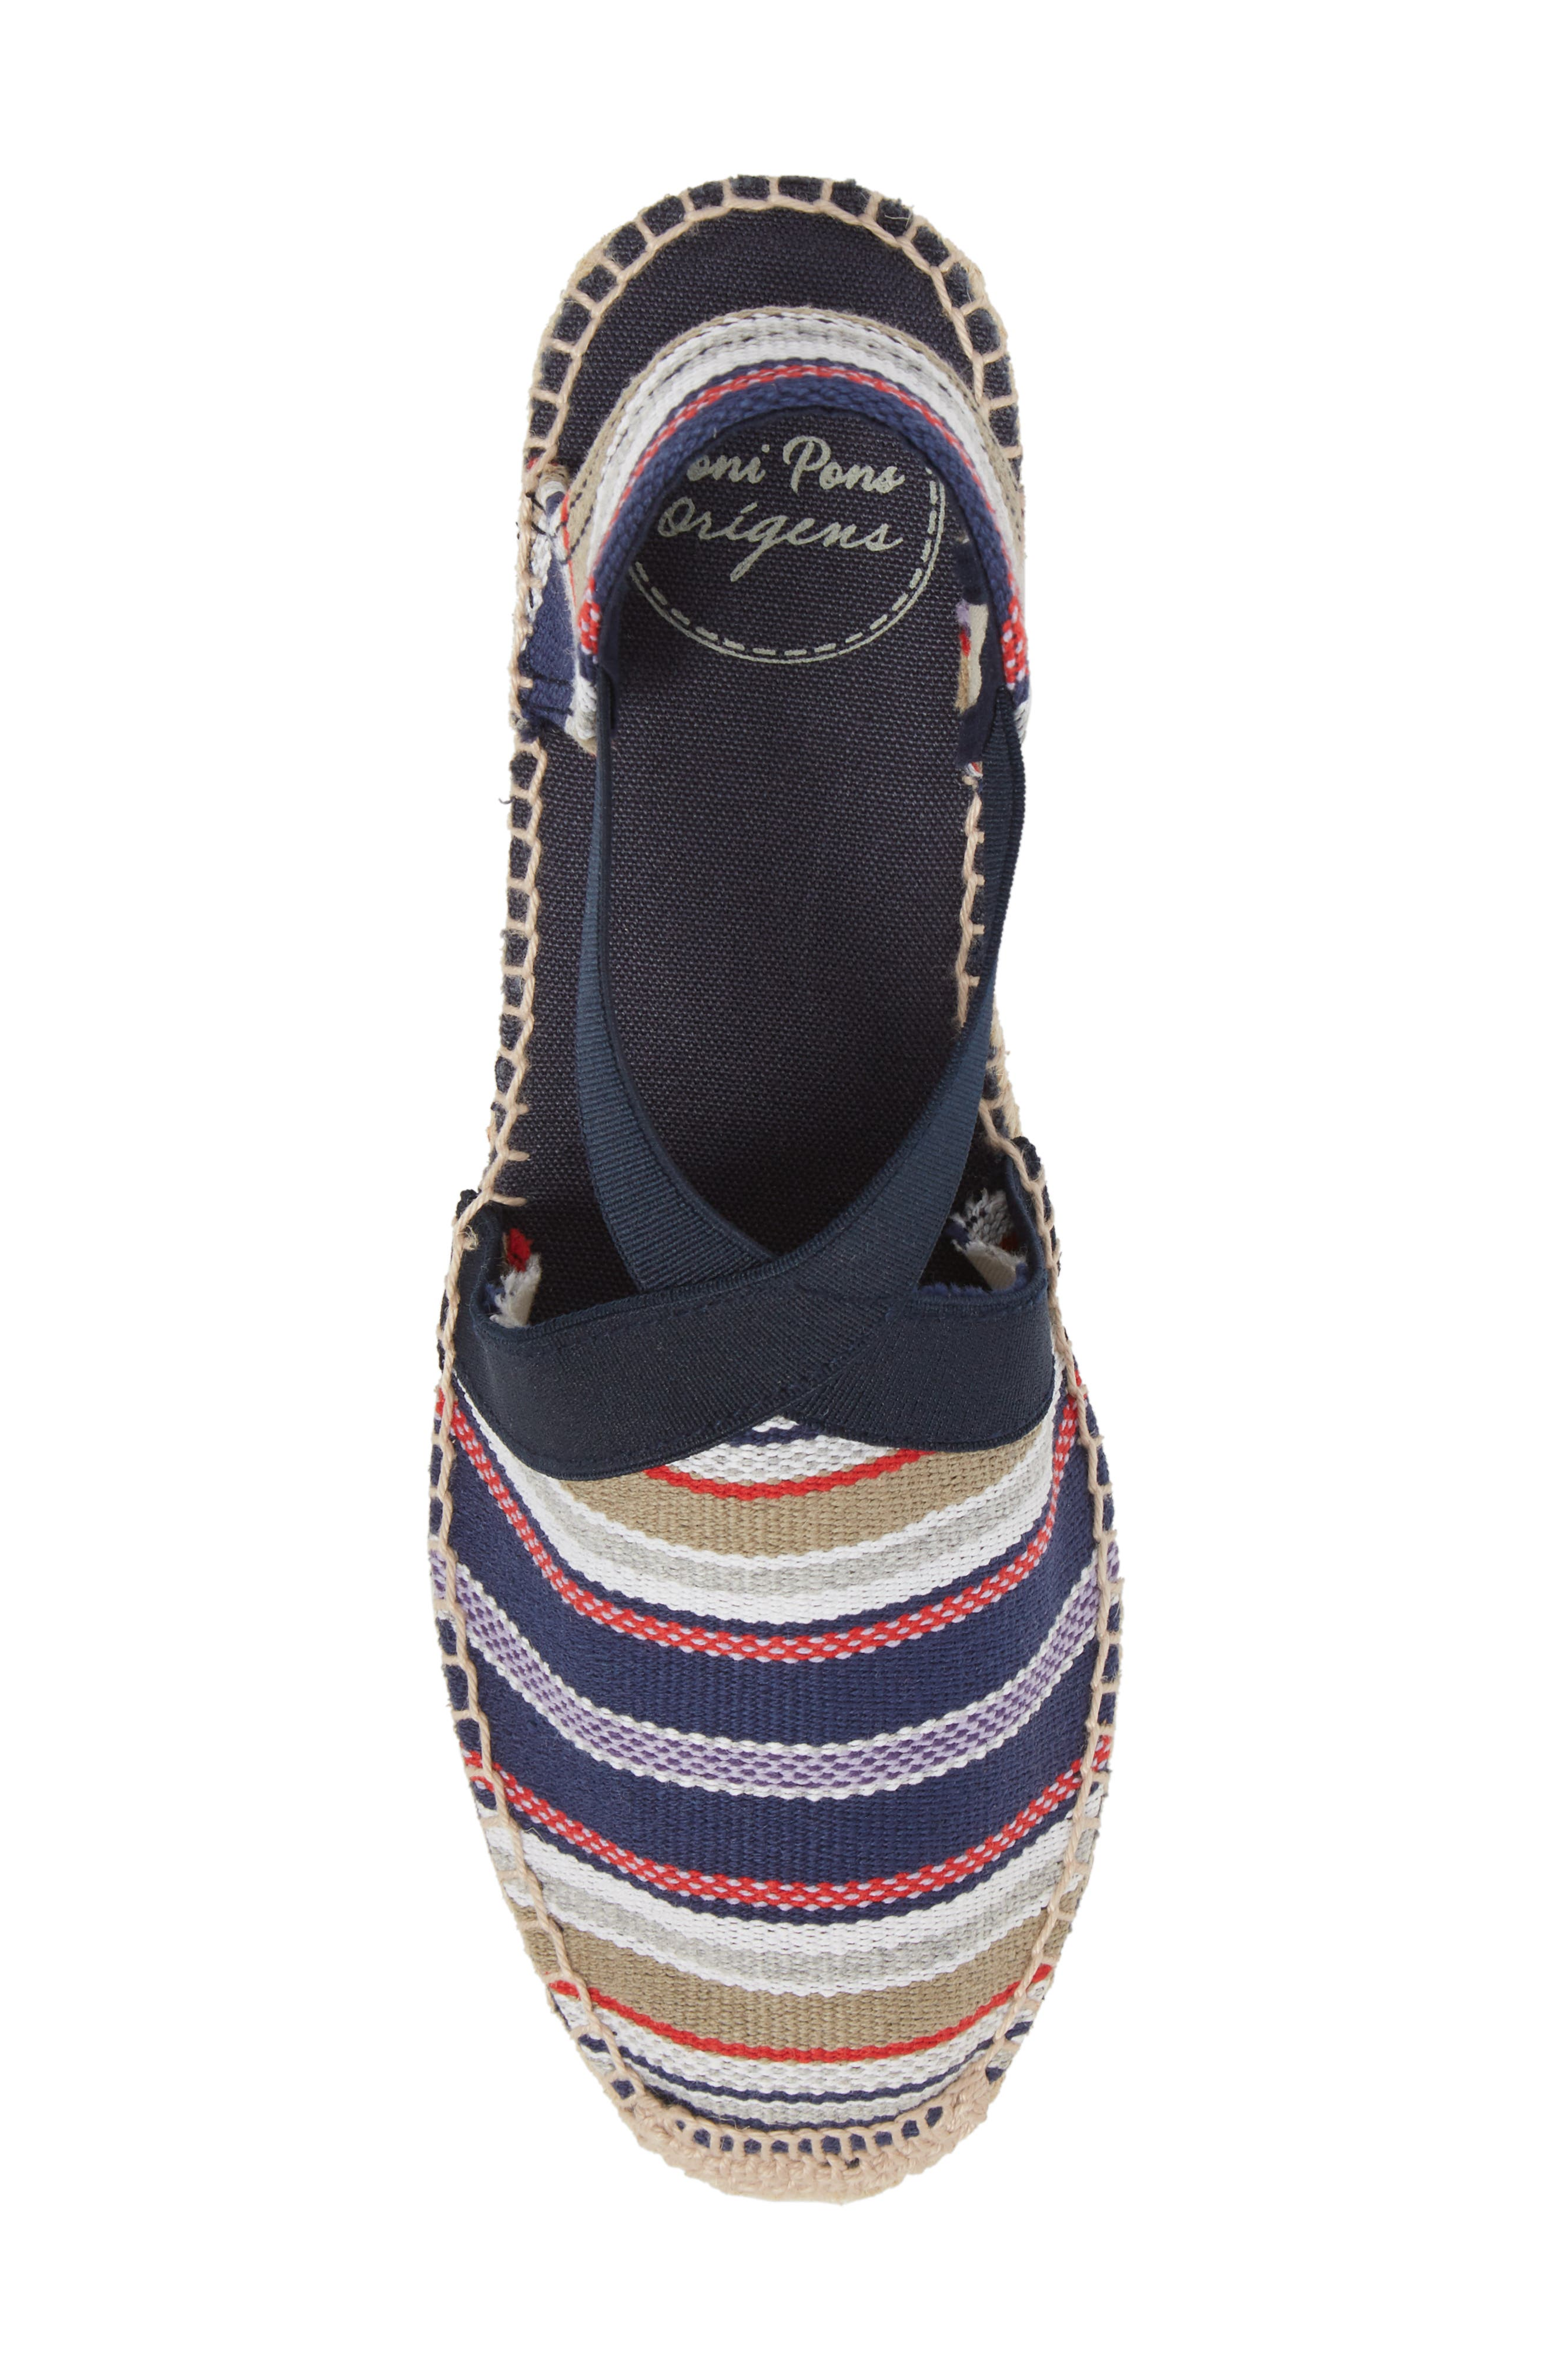 'Tarbes' Espadrille Wedge Sandal,                             Alternate thumbnail 5, color,                             Navy Fabric